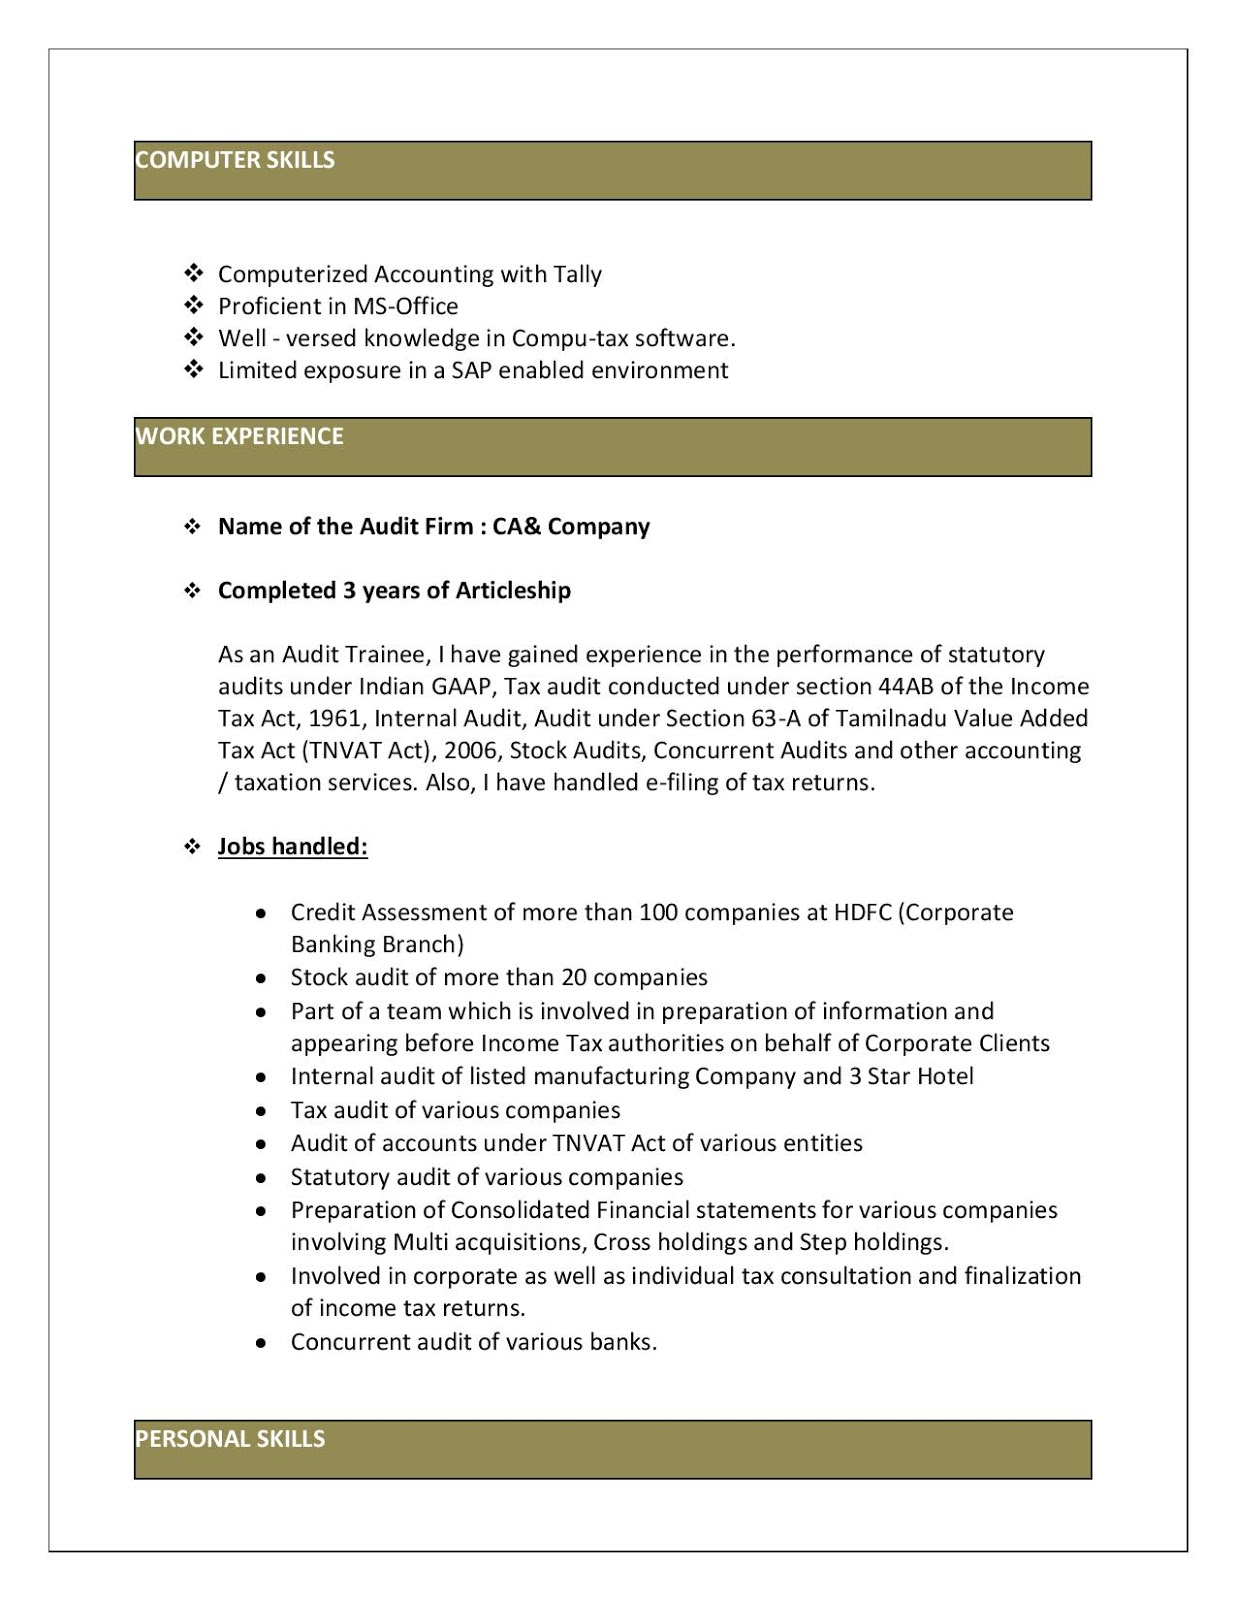 Experienced Articleship Resume Format Download In Ms Word Resume